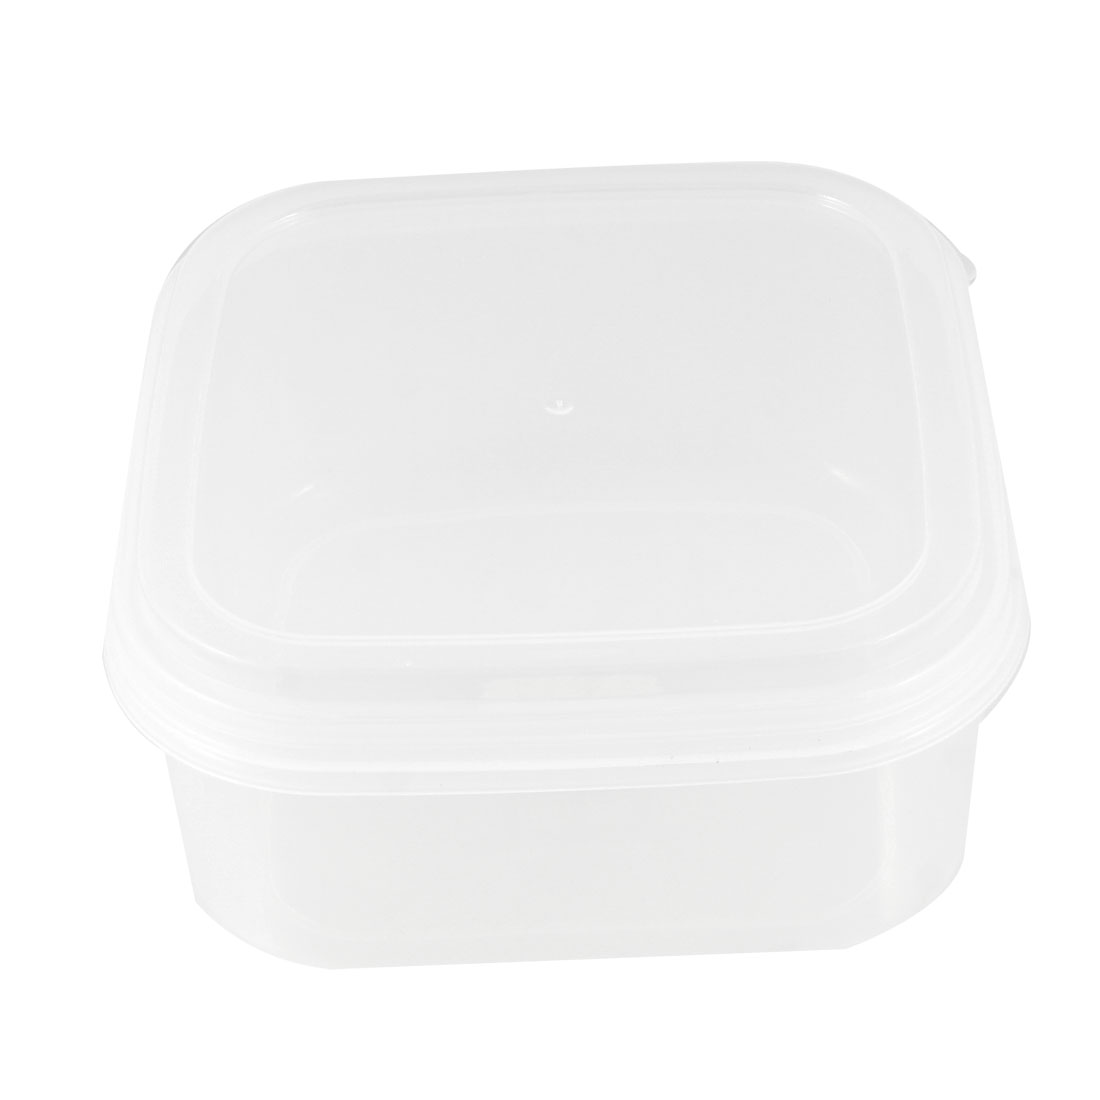 Clear White Square Shaped Plastic Preservations Food Container